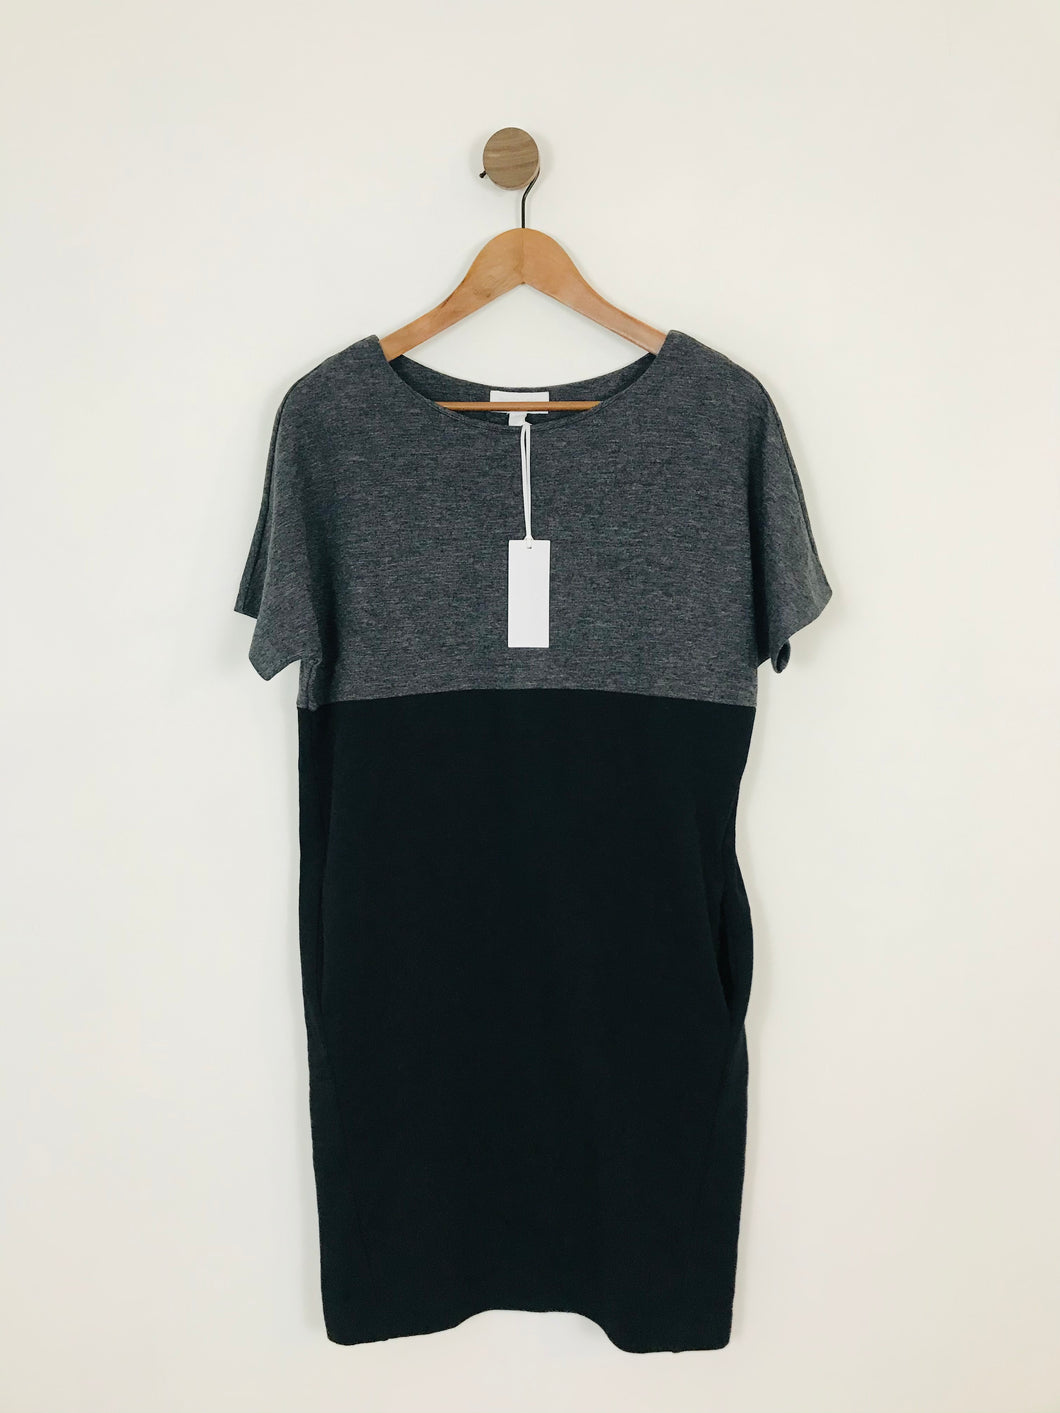 The White Company White Label Women's Colour Block Shift Dress NWT | UK8 | Black Grey